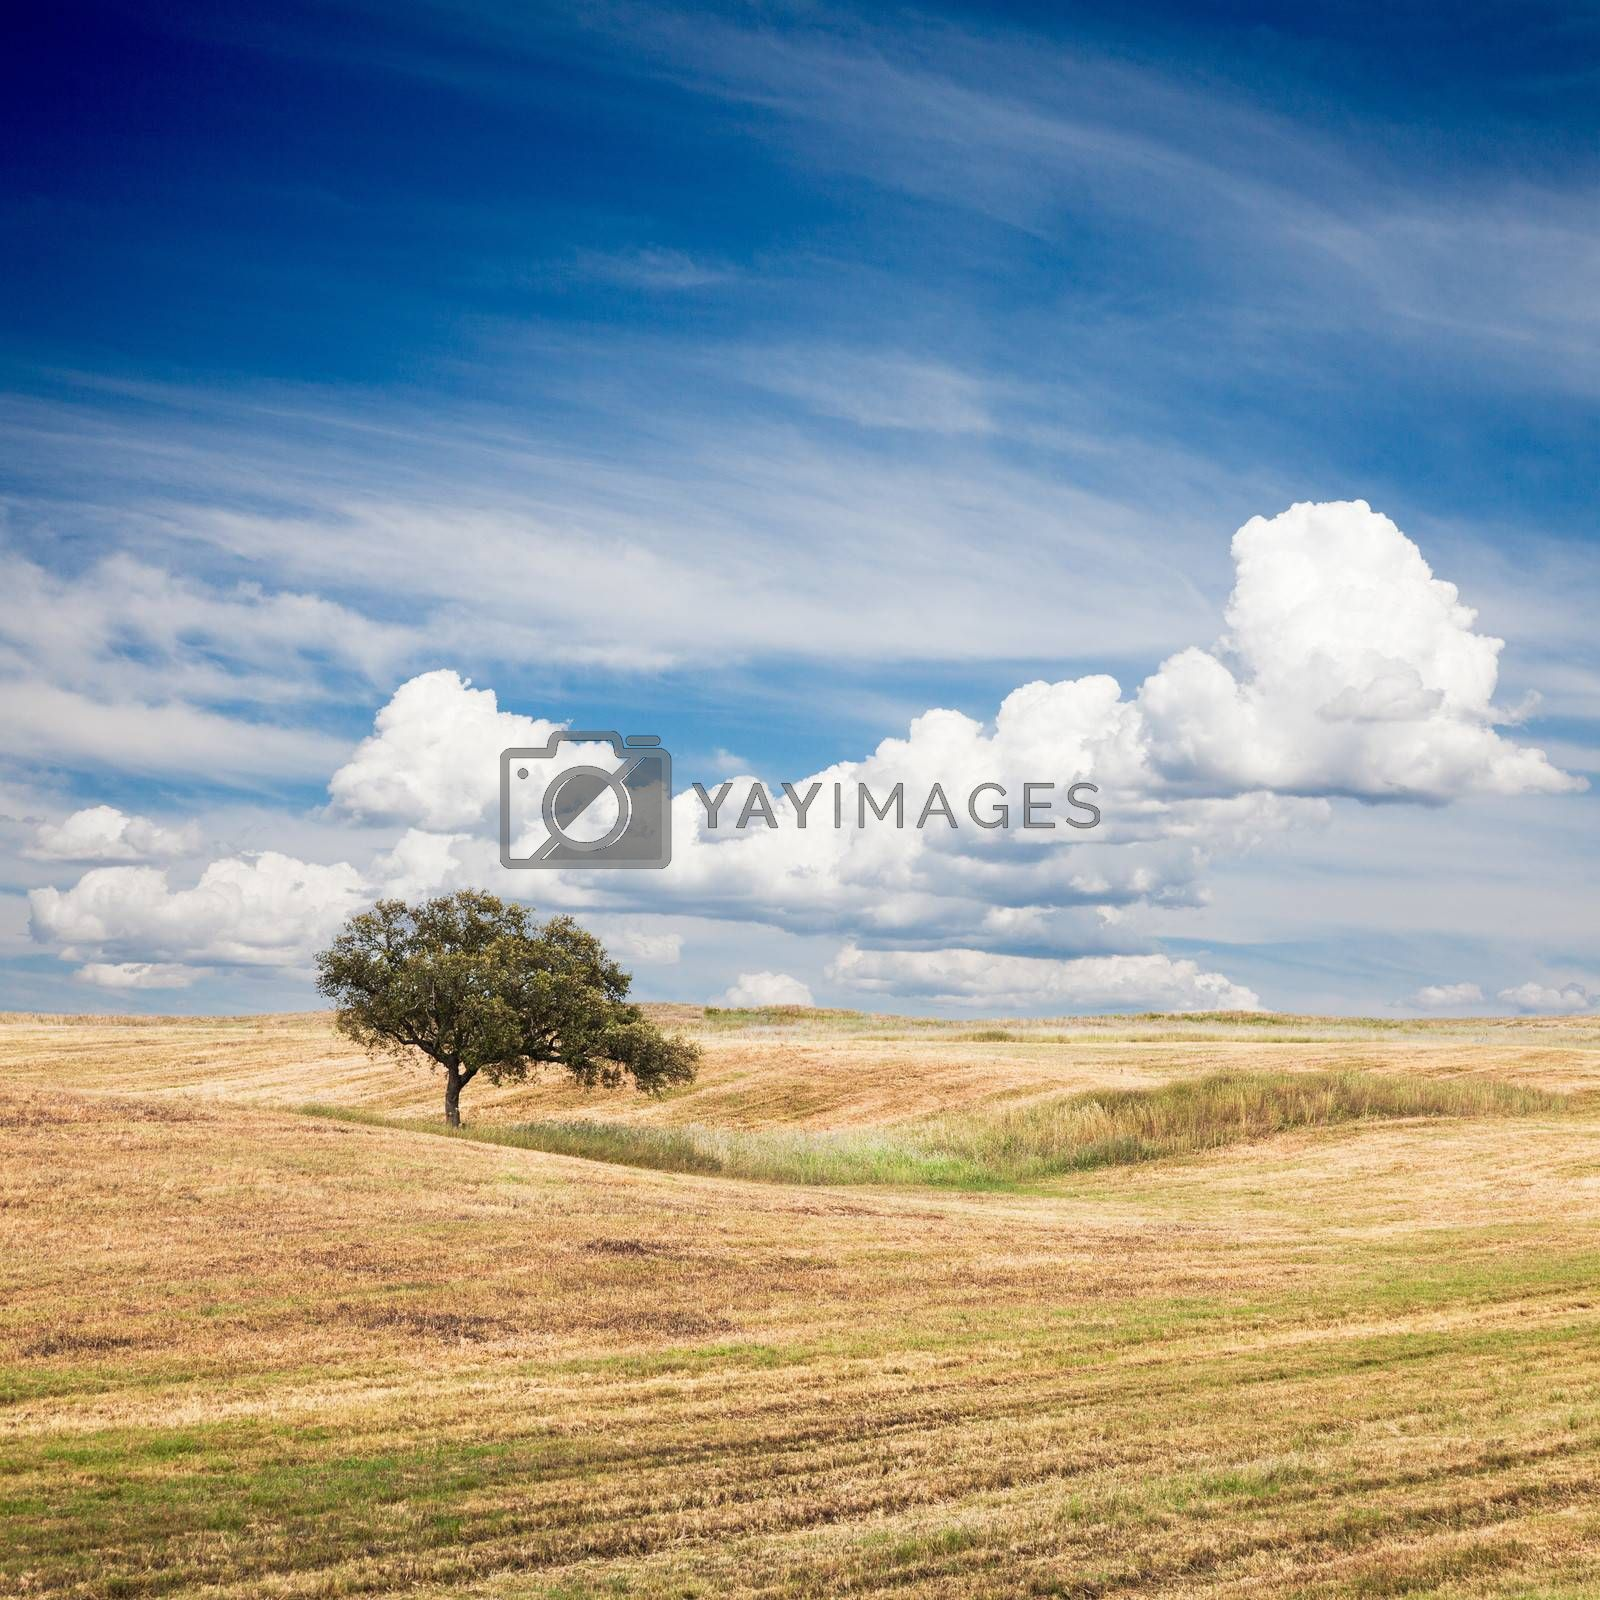 Royalty free image of Tree in Field by ajn